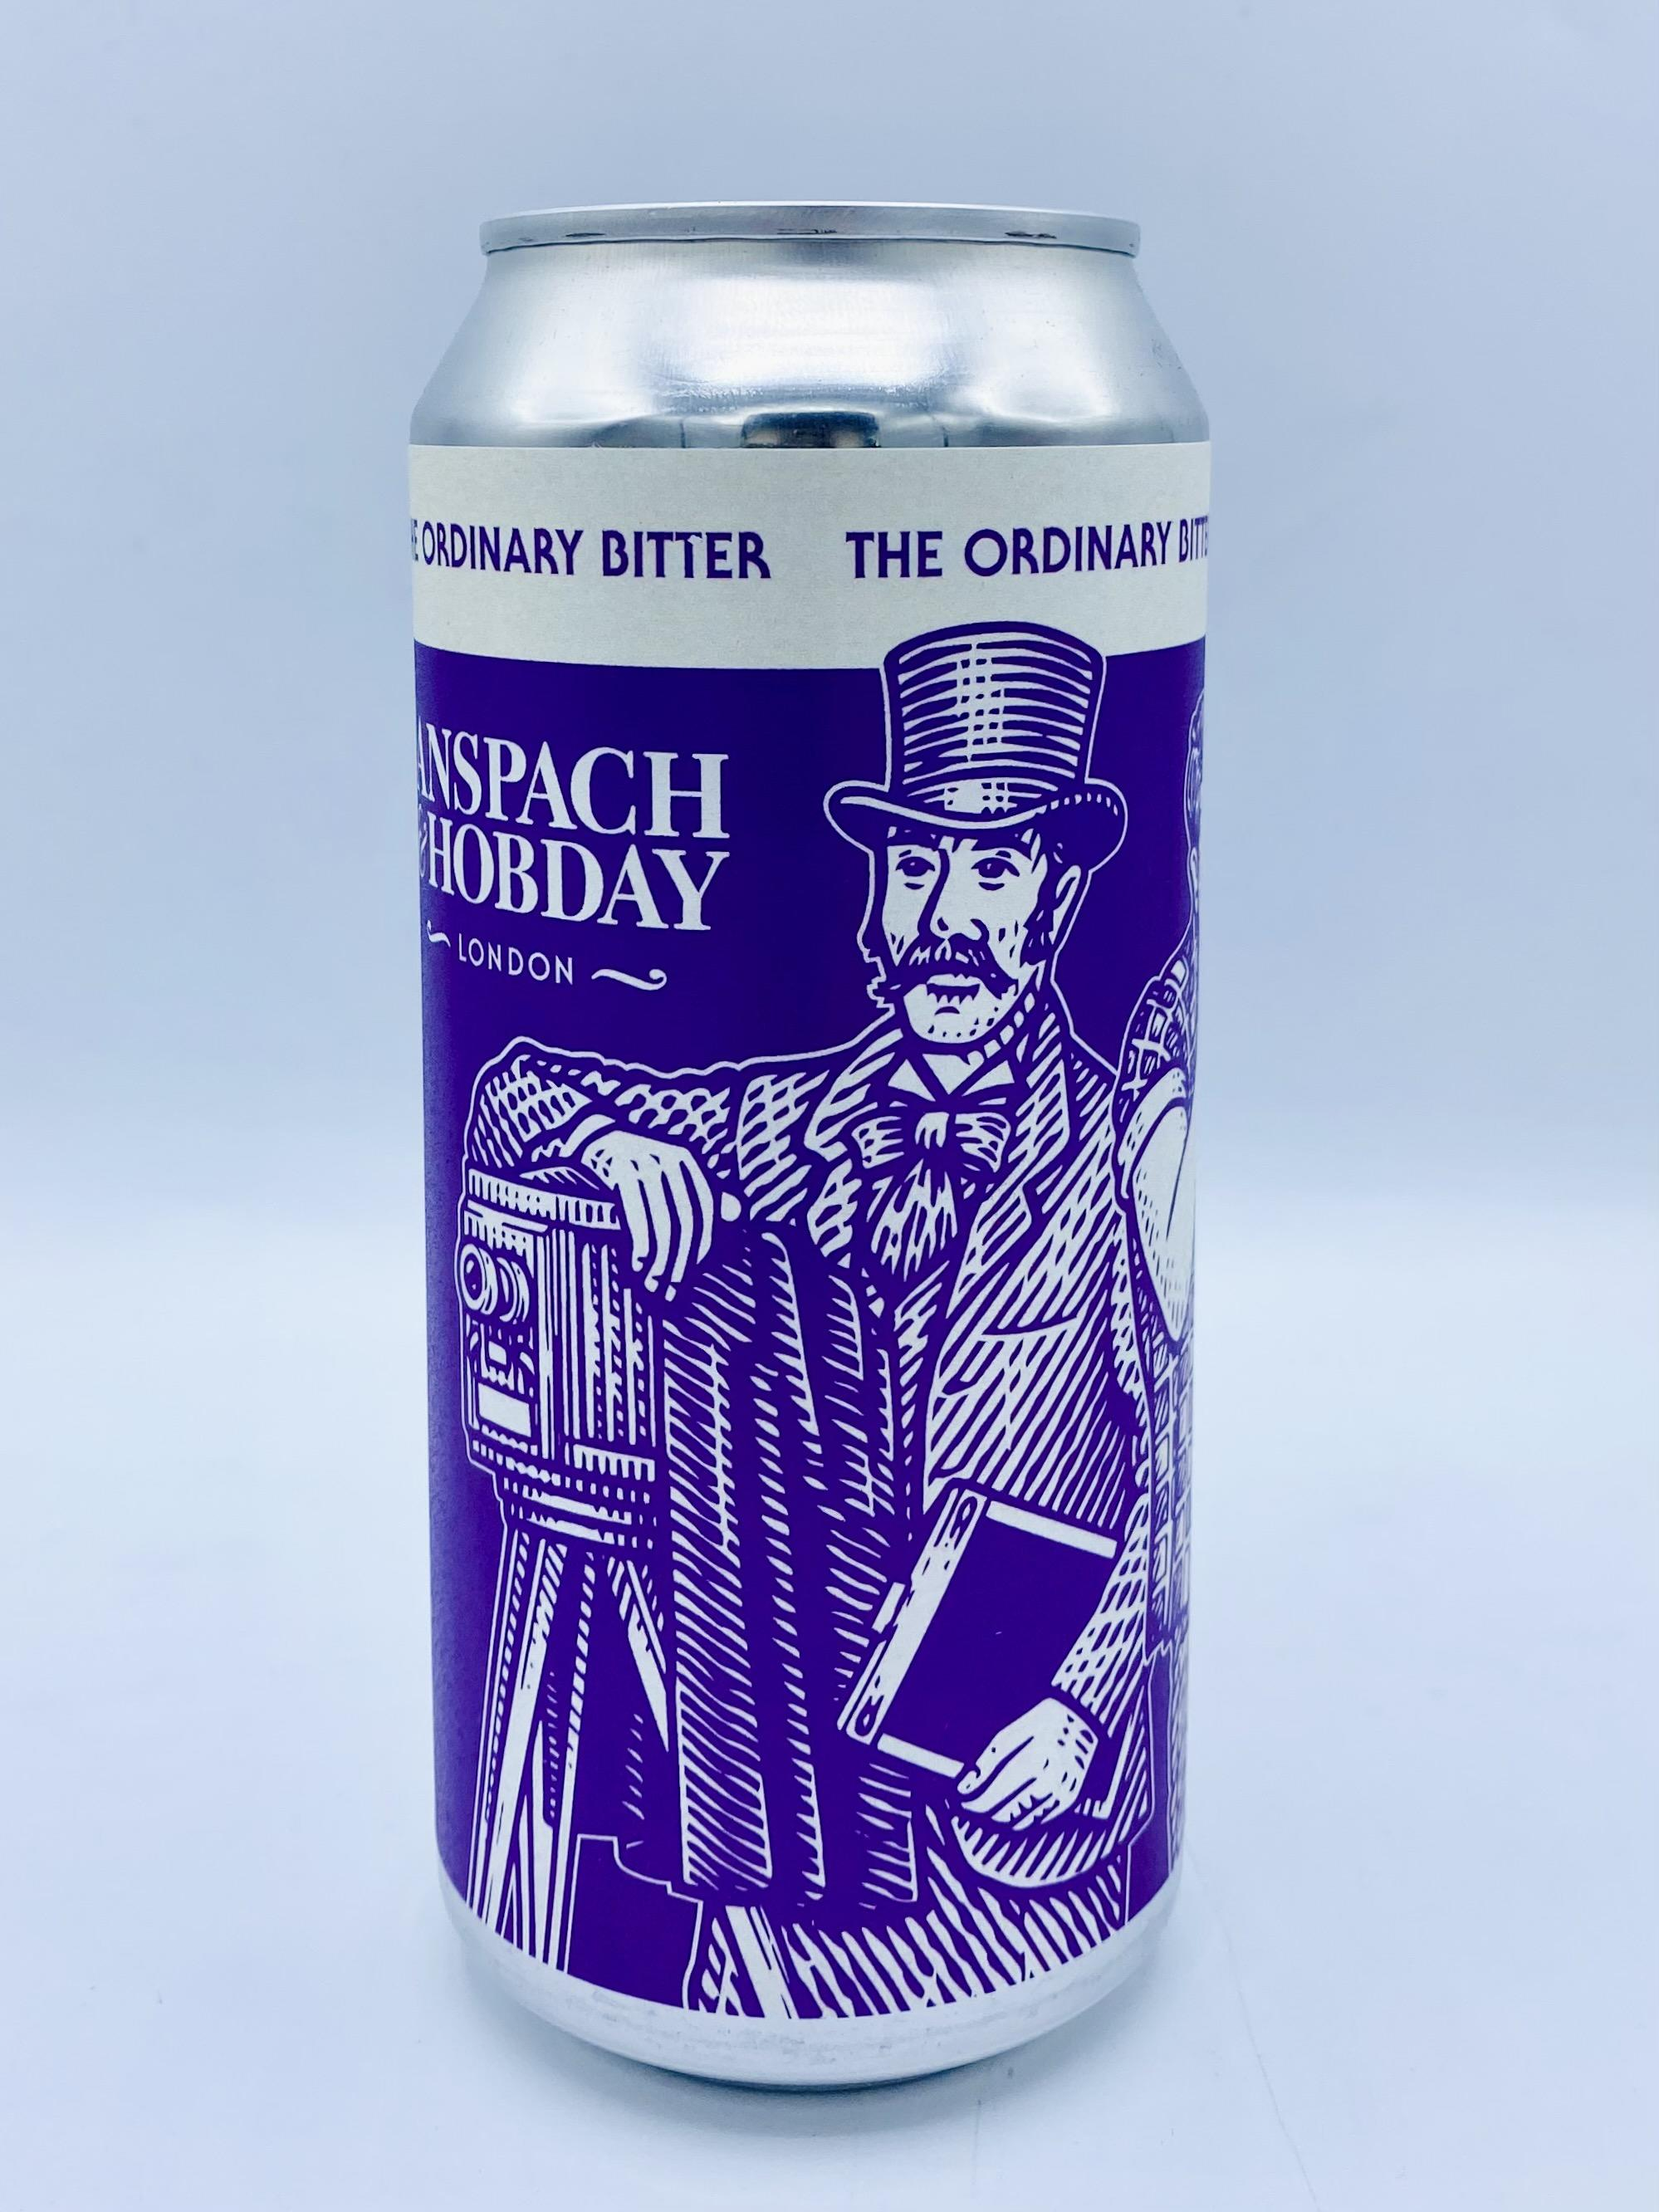 Anspatch & Hobday - The Ordinary Bitter 3.7%